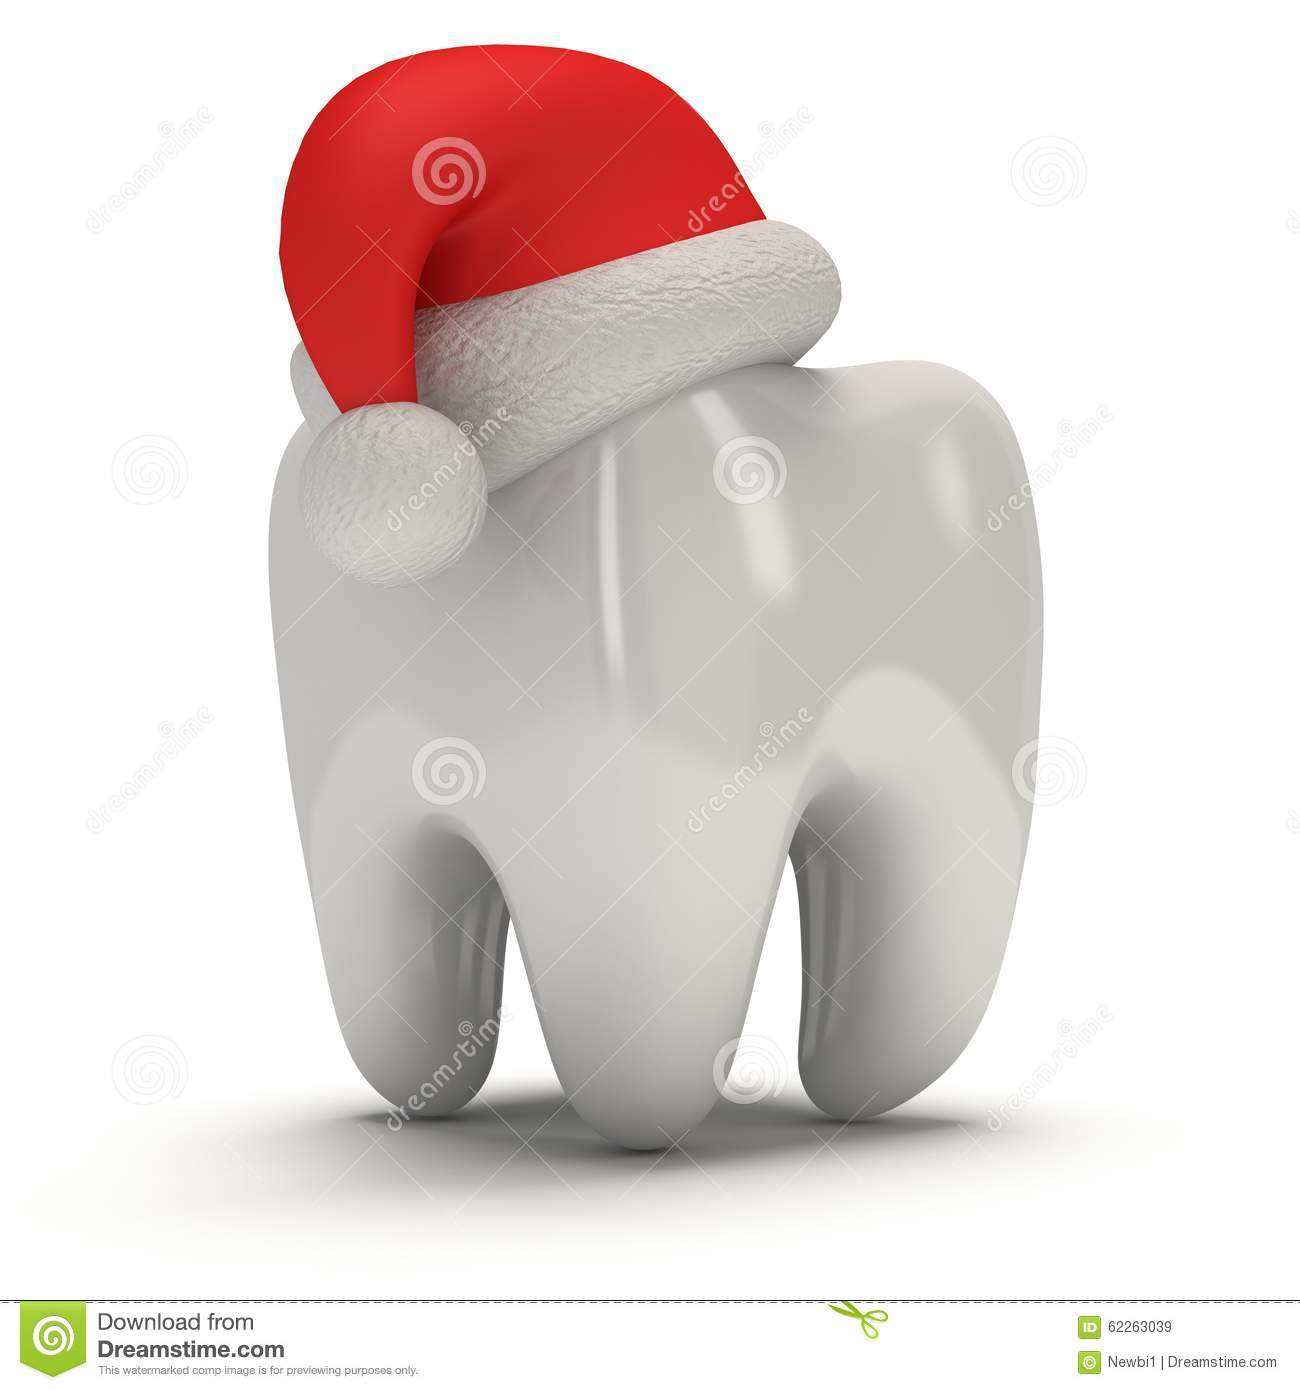 Tooth Wearing Santa Claus Hat Stock Illustration - Illustration of ...